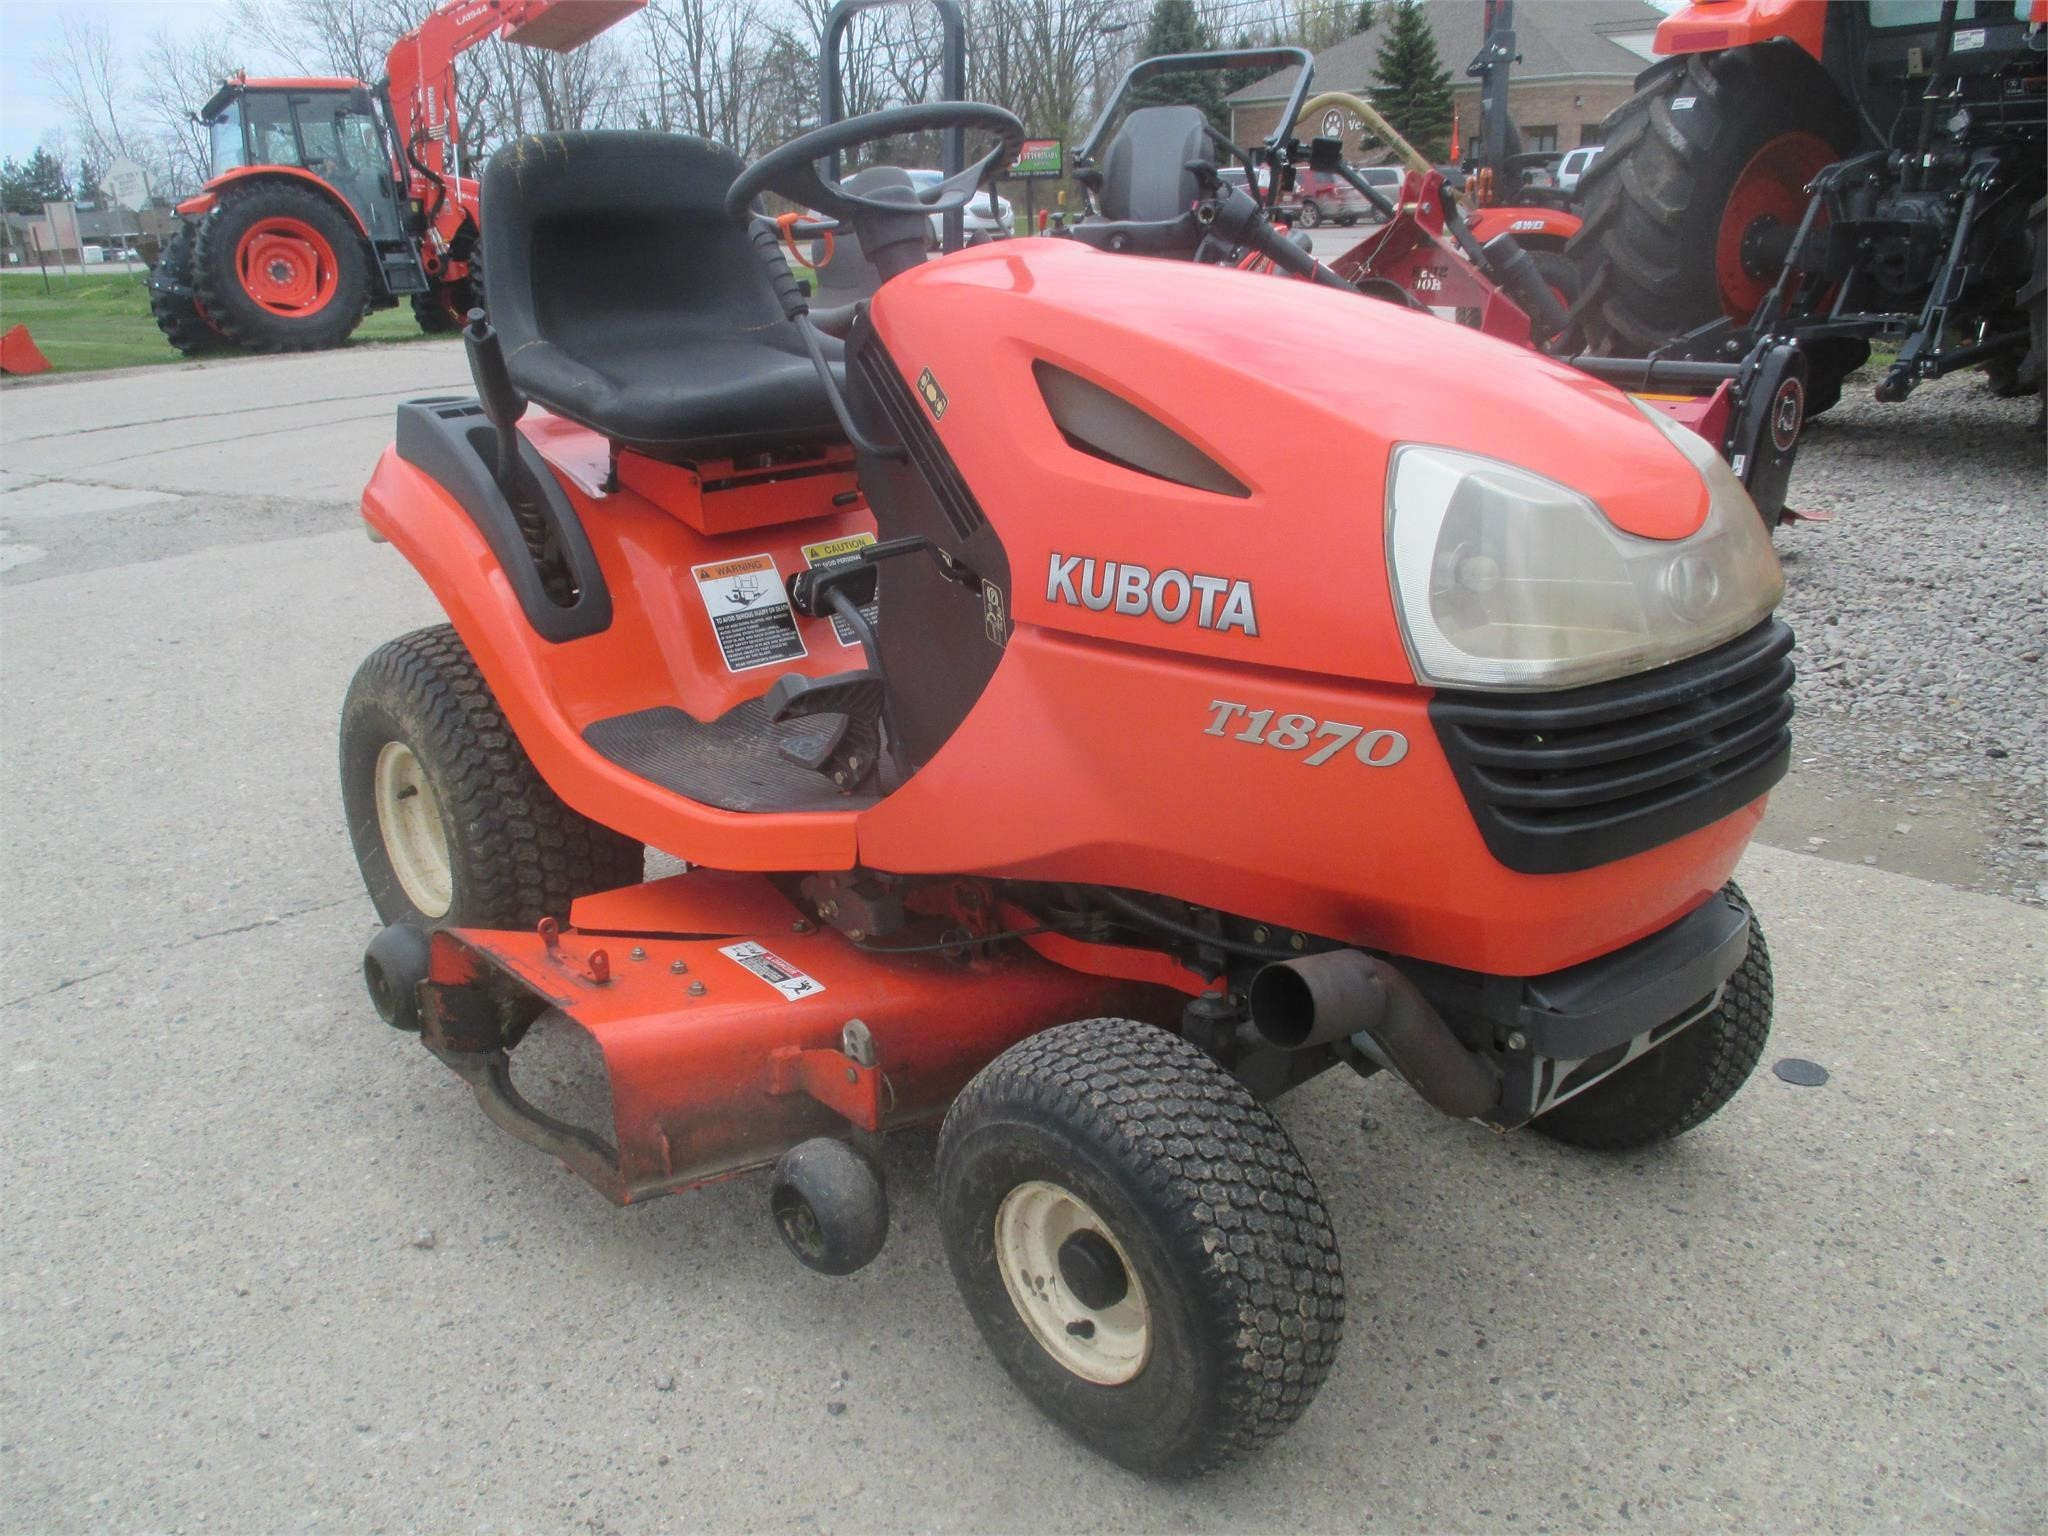 Kubota T1870A Lawn and Garden